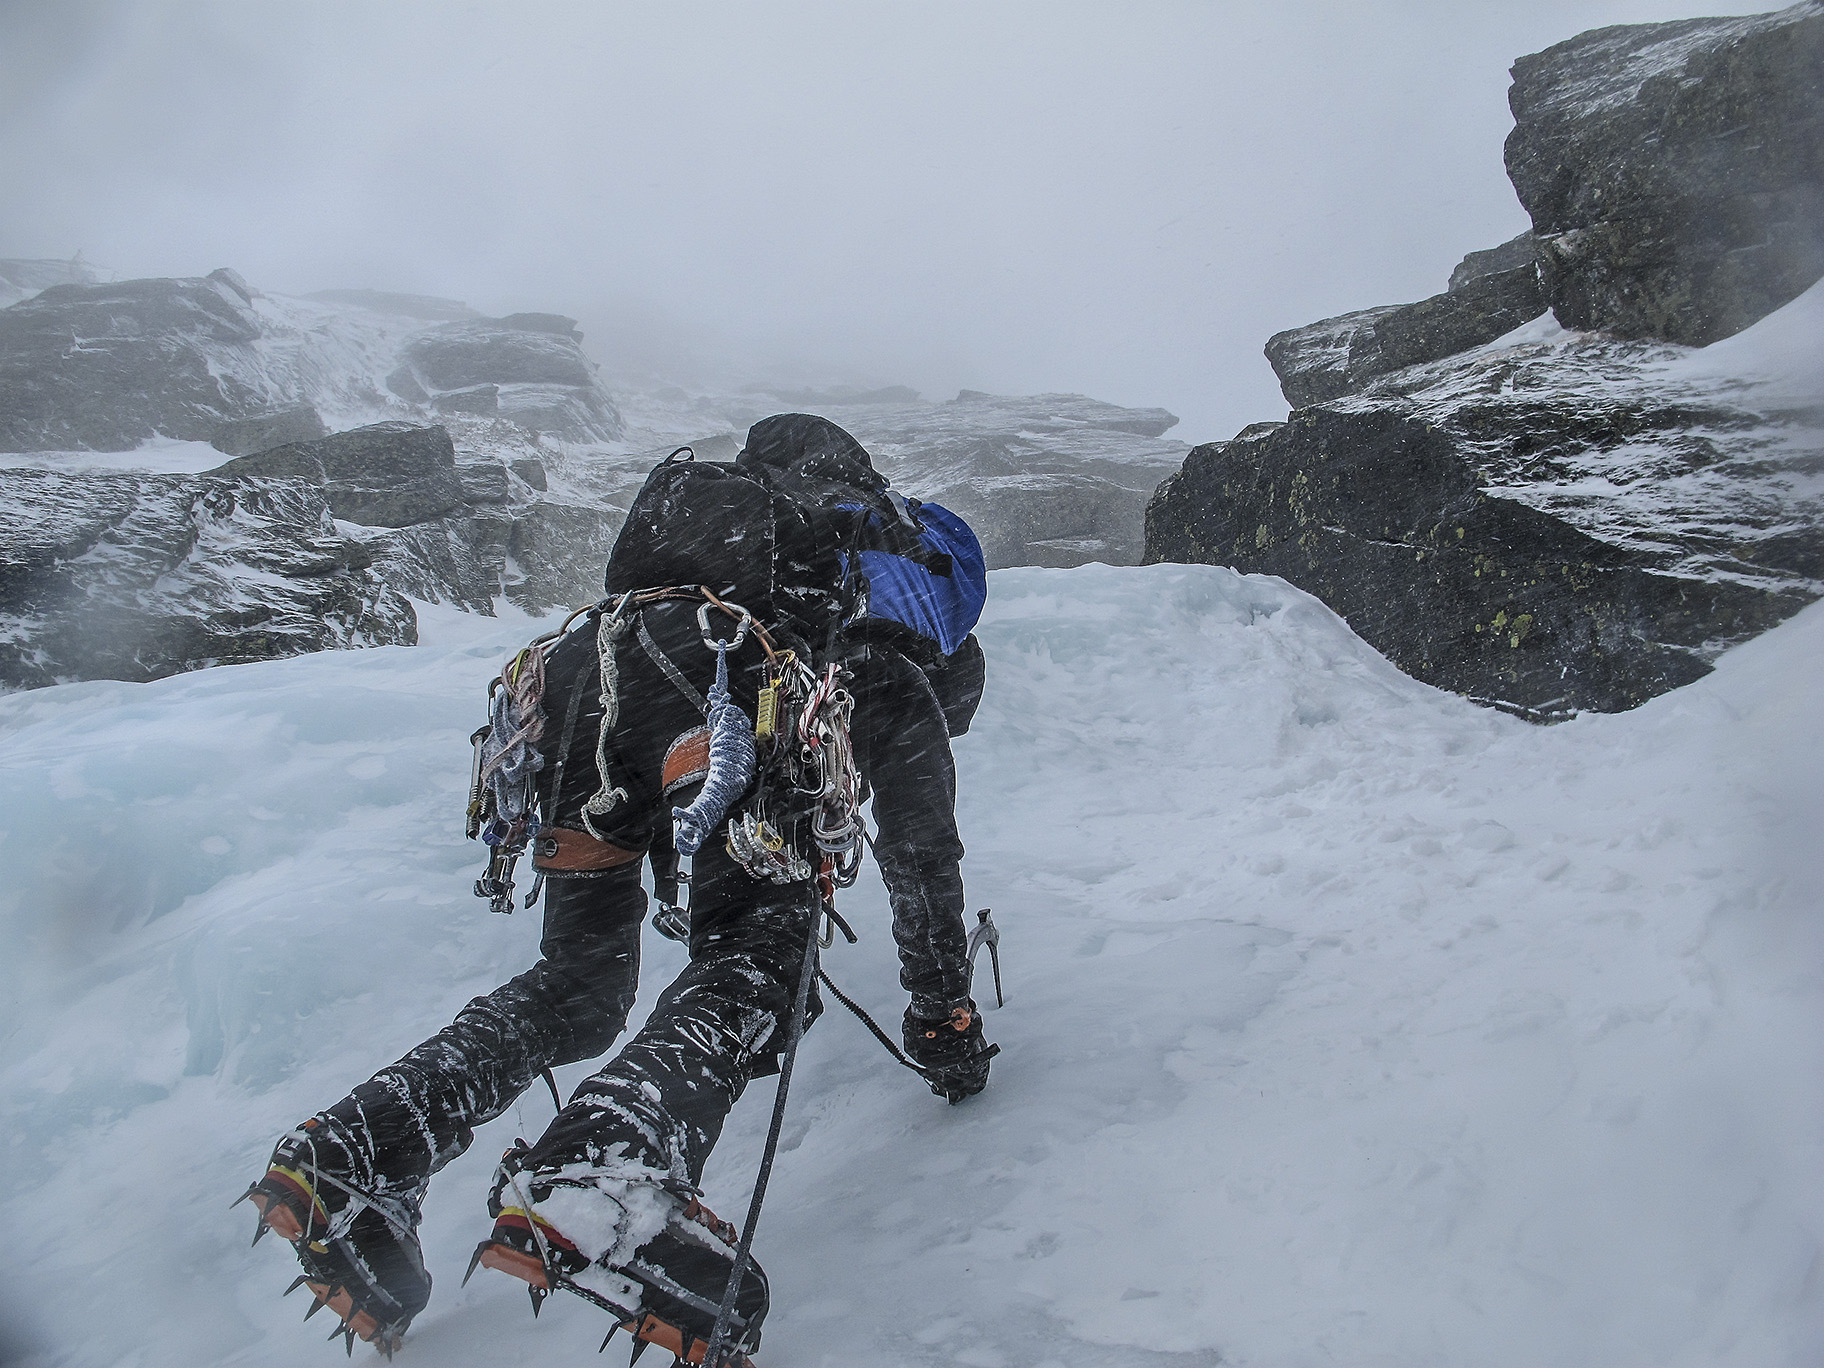 a mountaineer clings to ice with crampons and an ice ax, photo by Chris Vultaggio